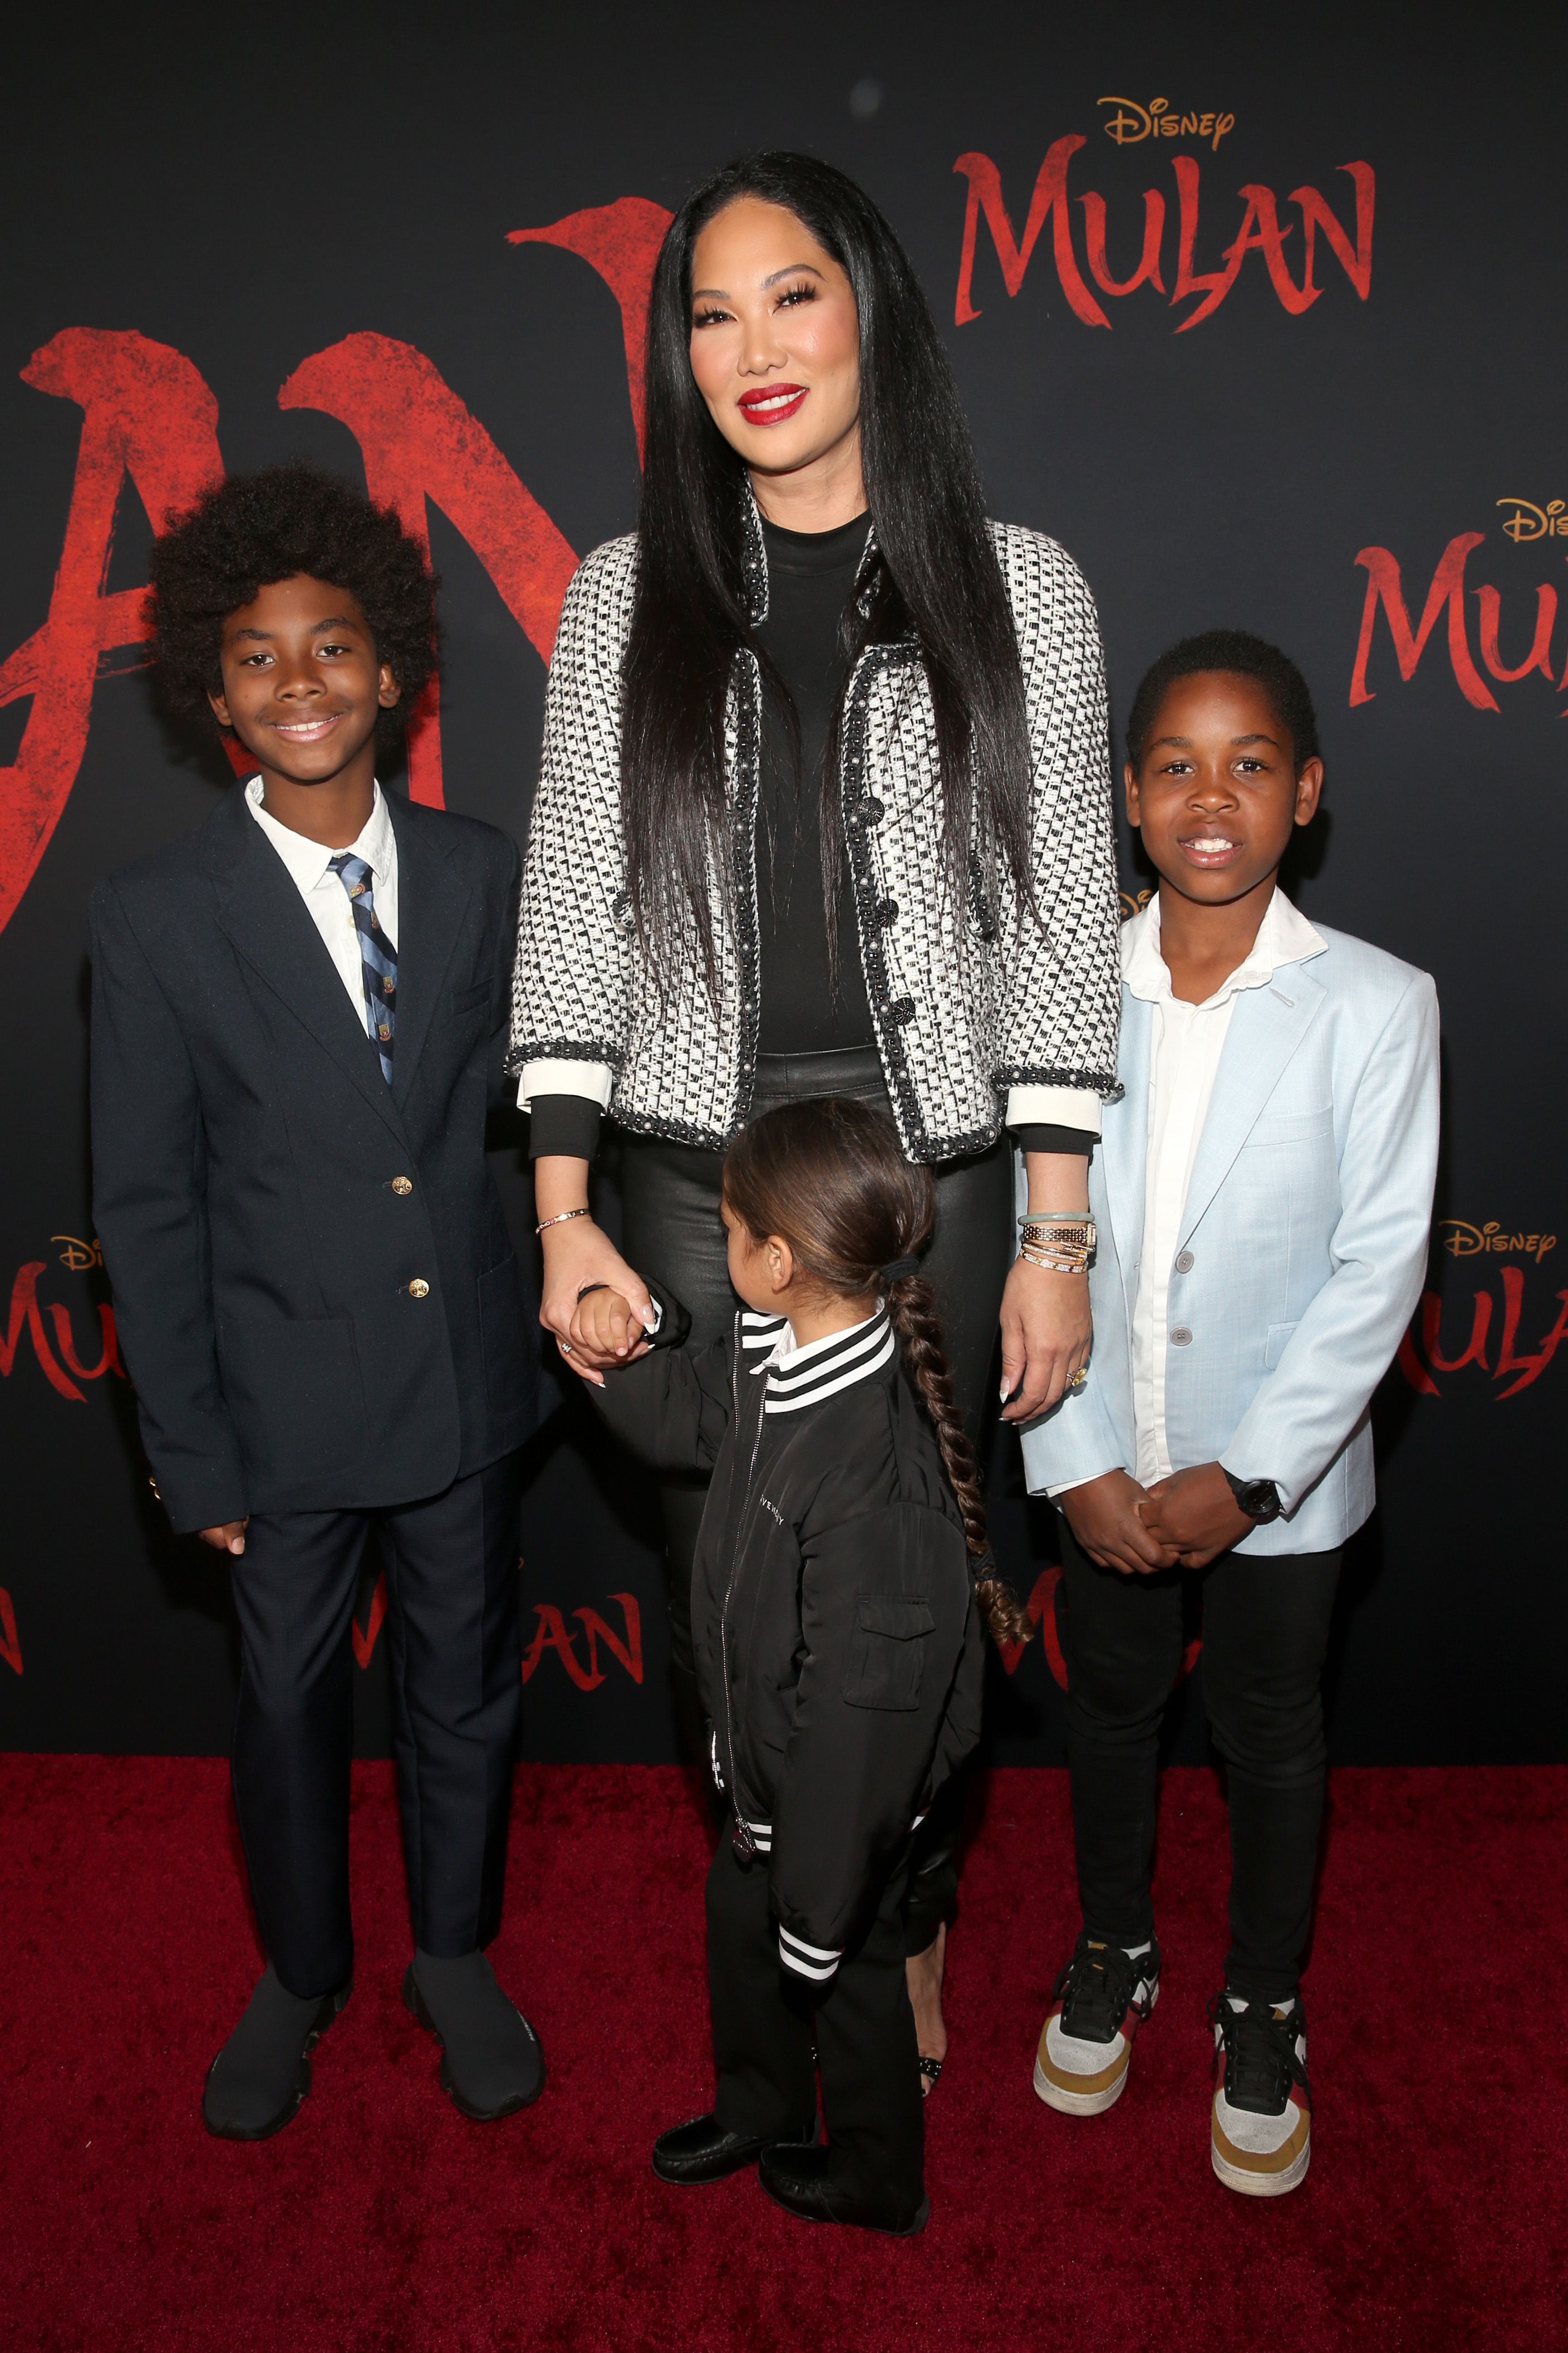 """Kimora Lee Simmons and sons attend the World Premiere of Disney's """"MULAN"""" at the Dolby Theatre on March 9, 2020 in Hollywood, California 